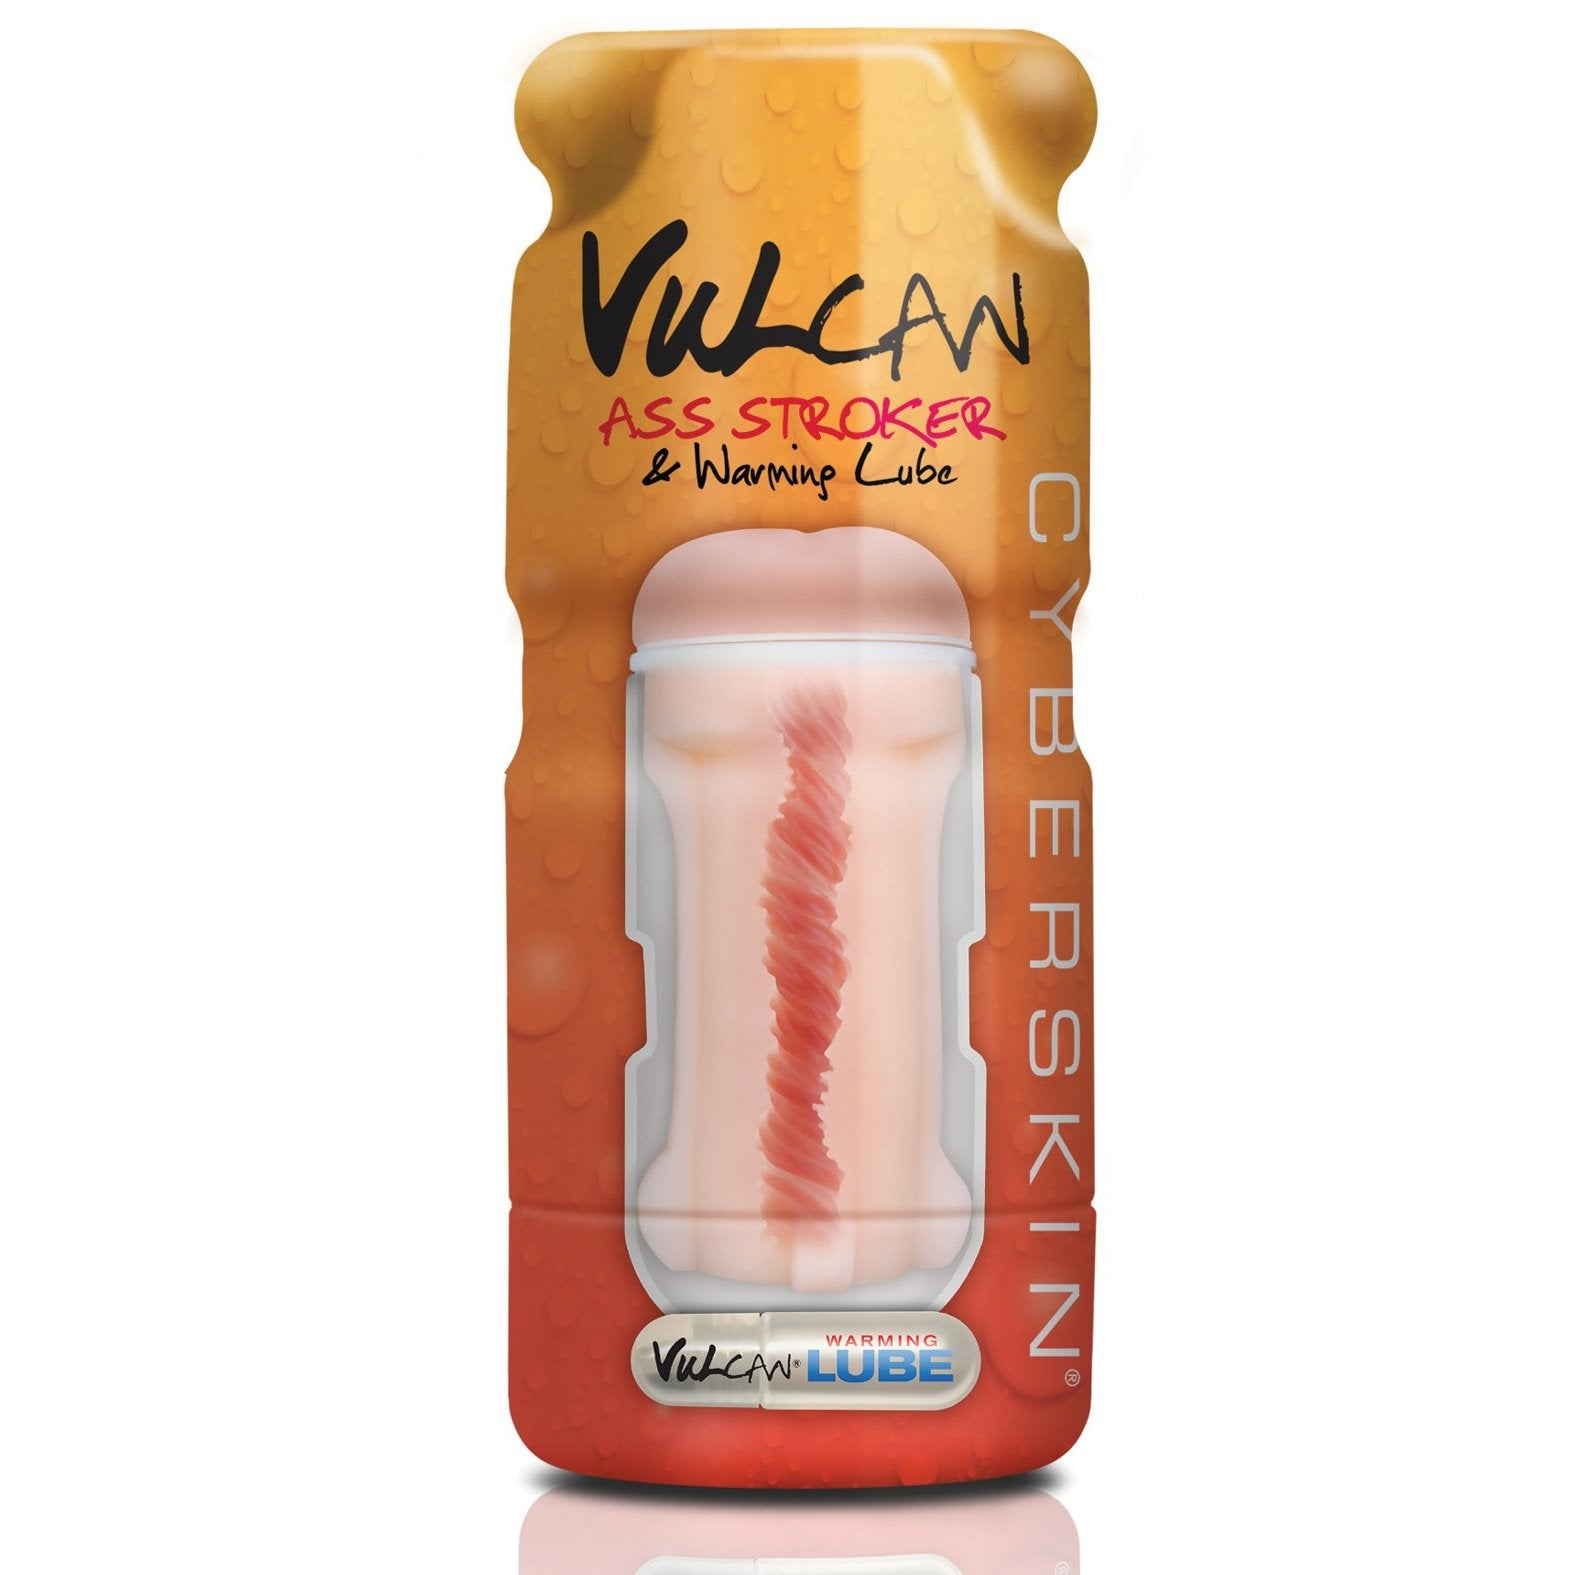 CyberSkin Vulcan Ass Stroker with Warming Lube - Gay Men's Sex Toys - Adam's Toy Box